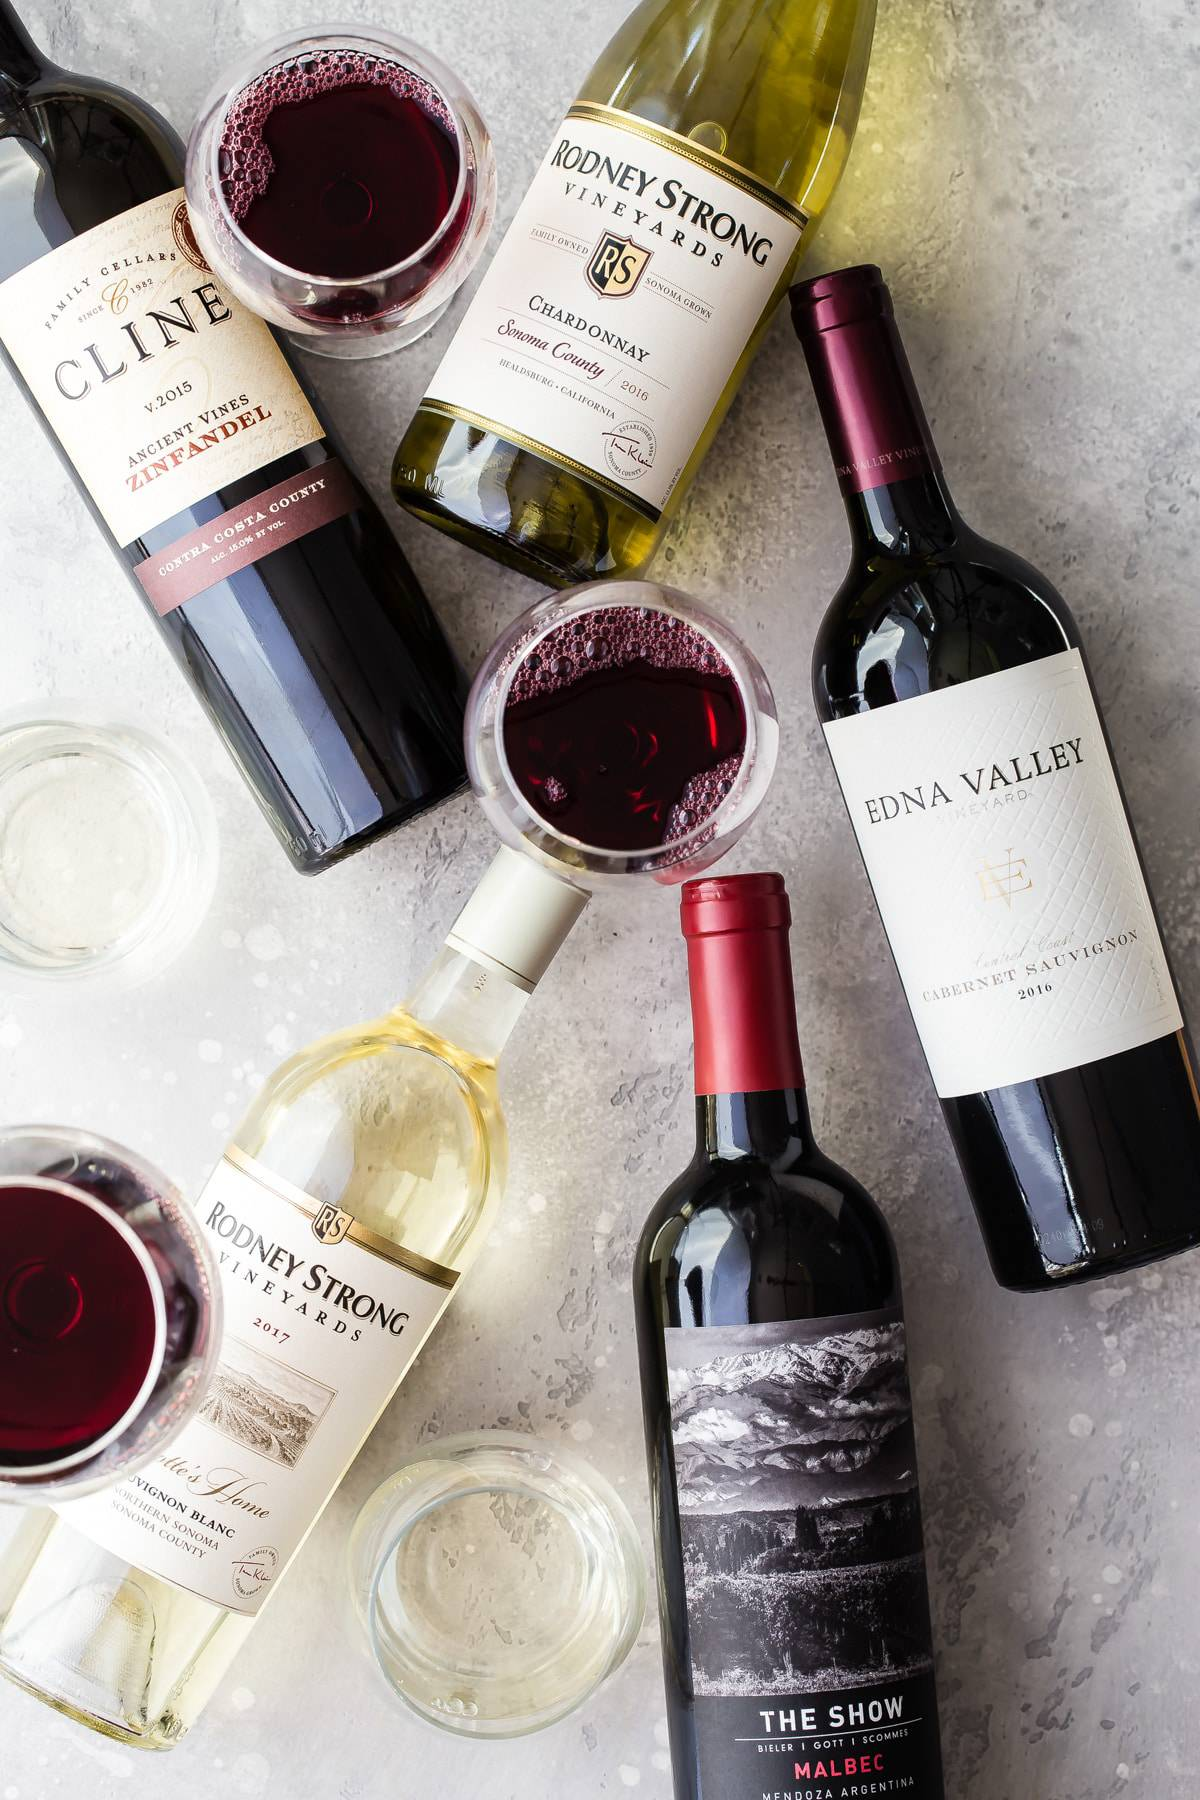 Check out my five awesome wine choices for the holidays! These are all under $15 and pair well with so many different foods! #wine #holidays #thanksgivingtips #christmasdinner #wineratings #awesomewine #foodnessgracious